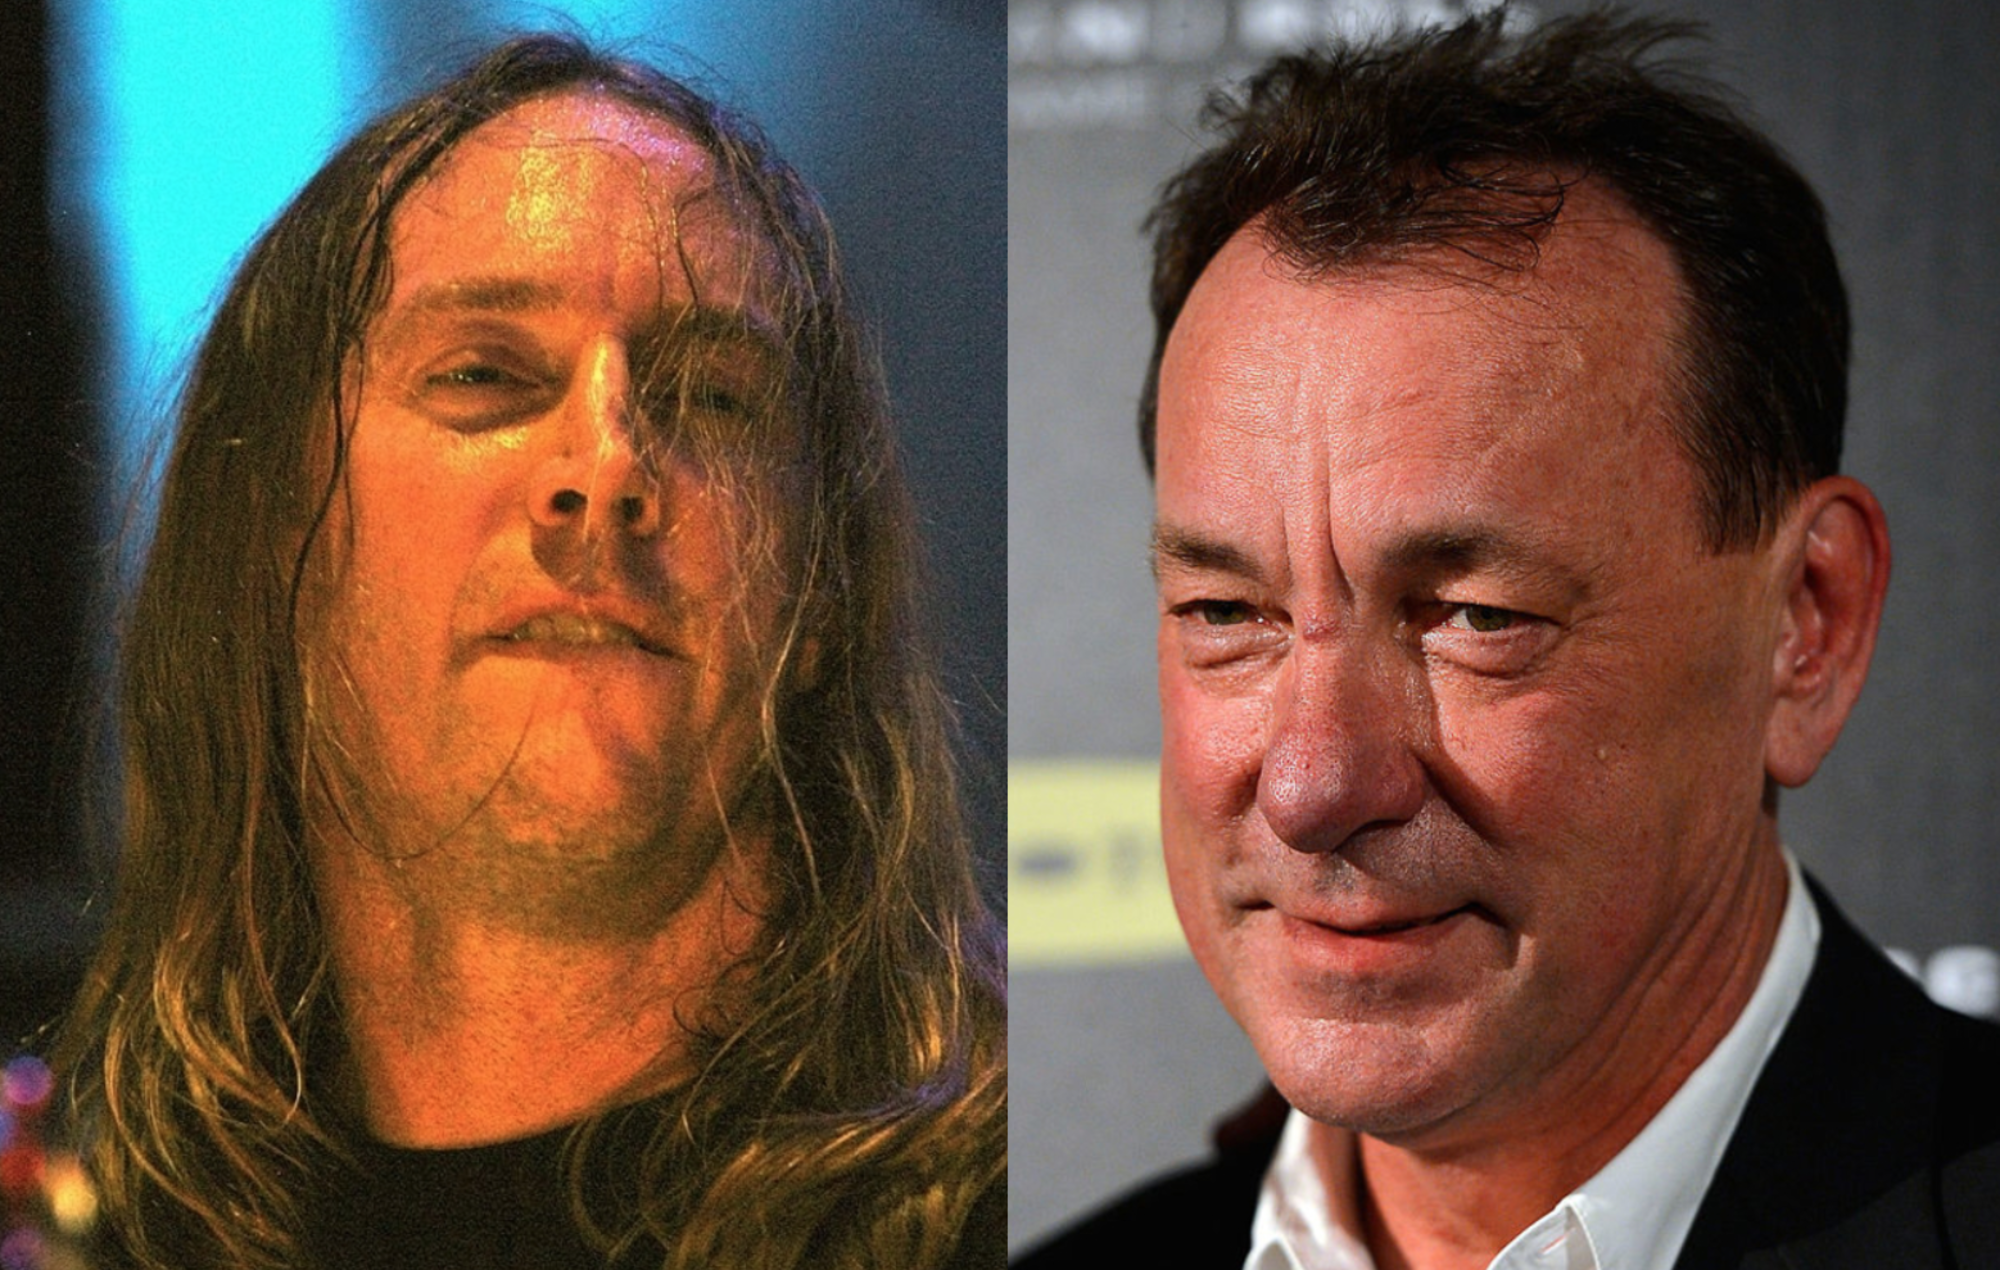 Tool performs tribute to Neil Peart during San Diego concert